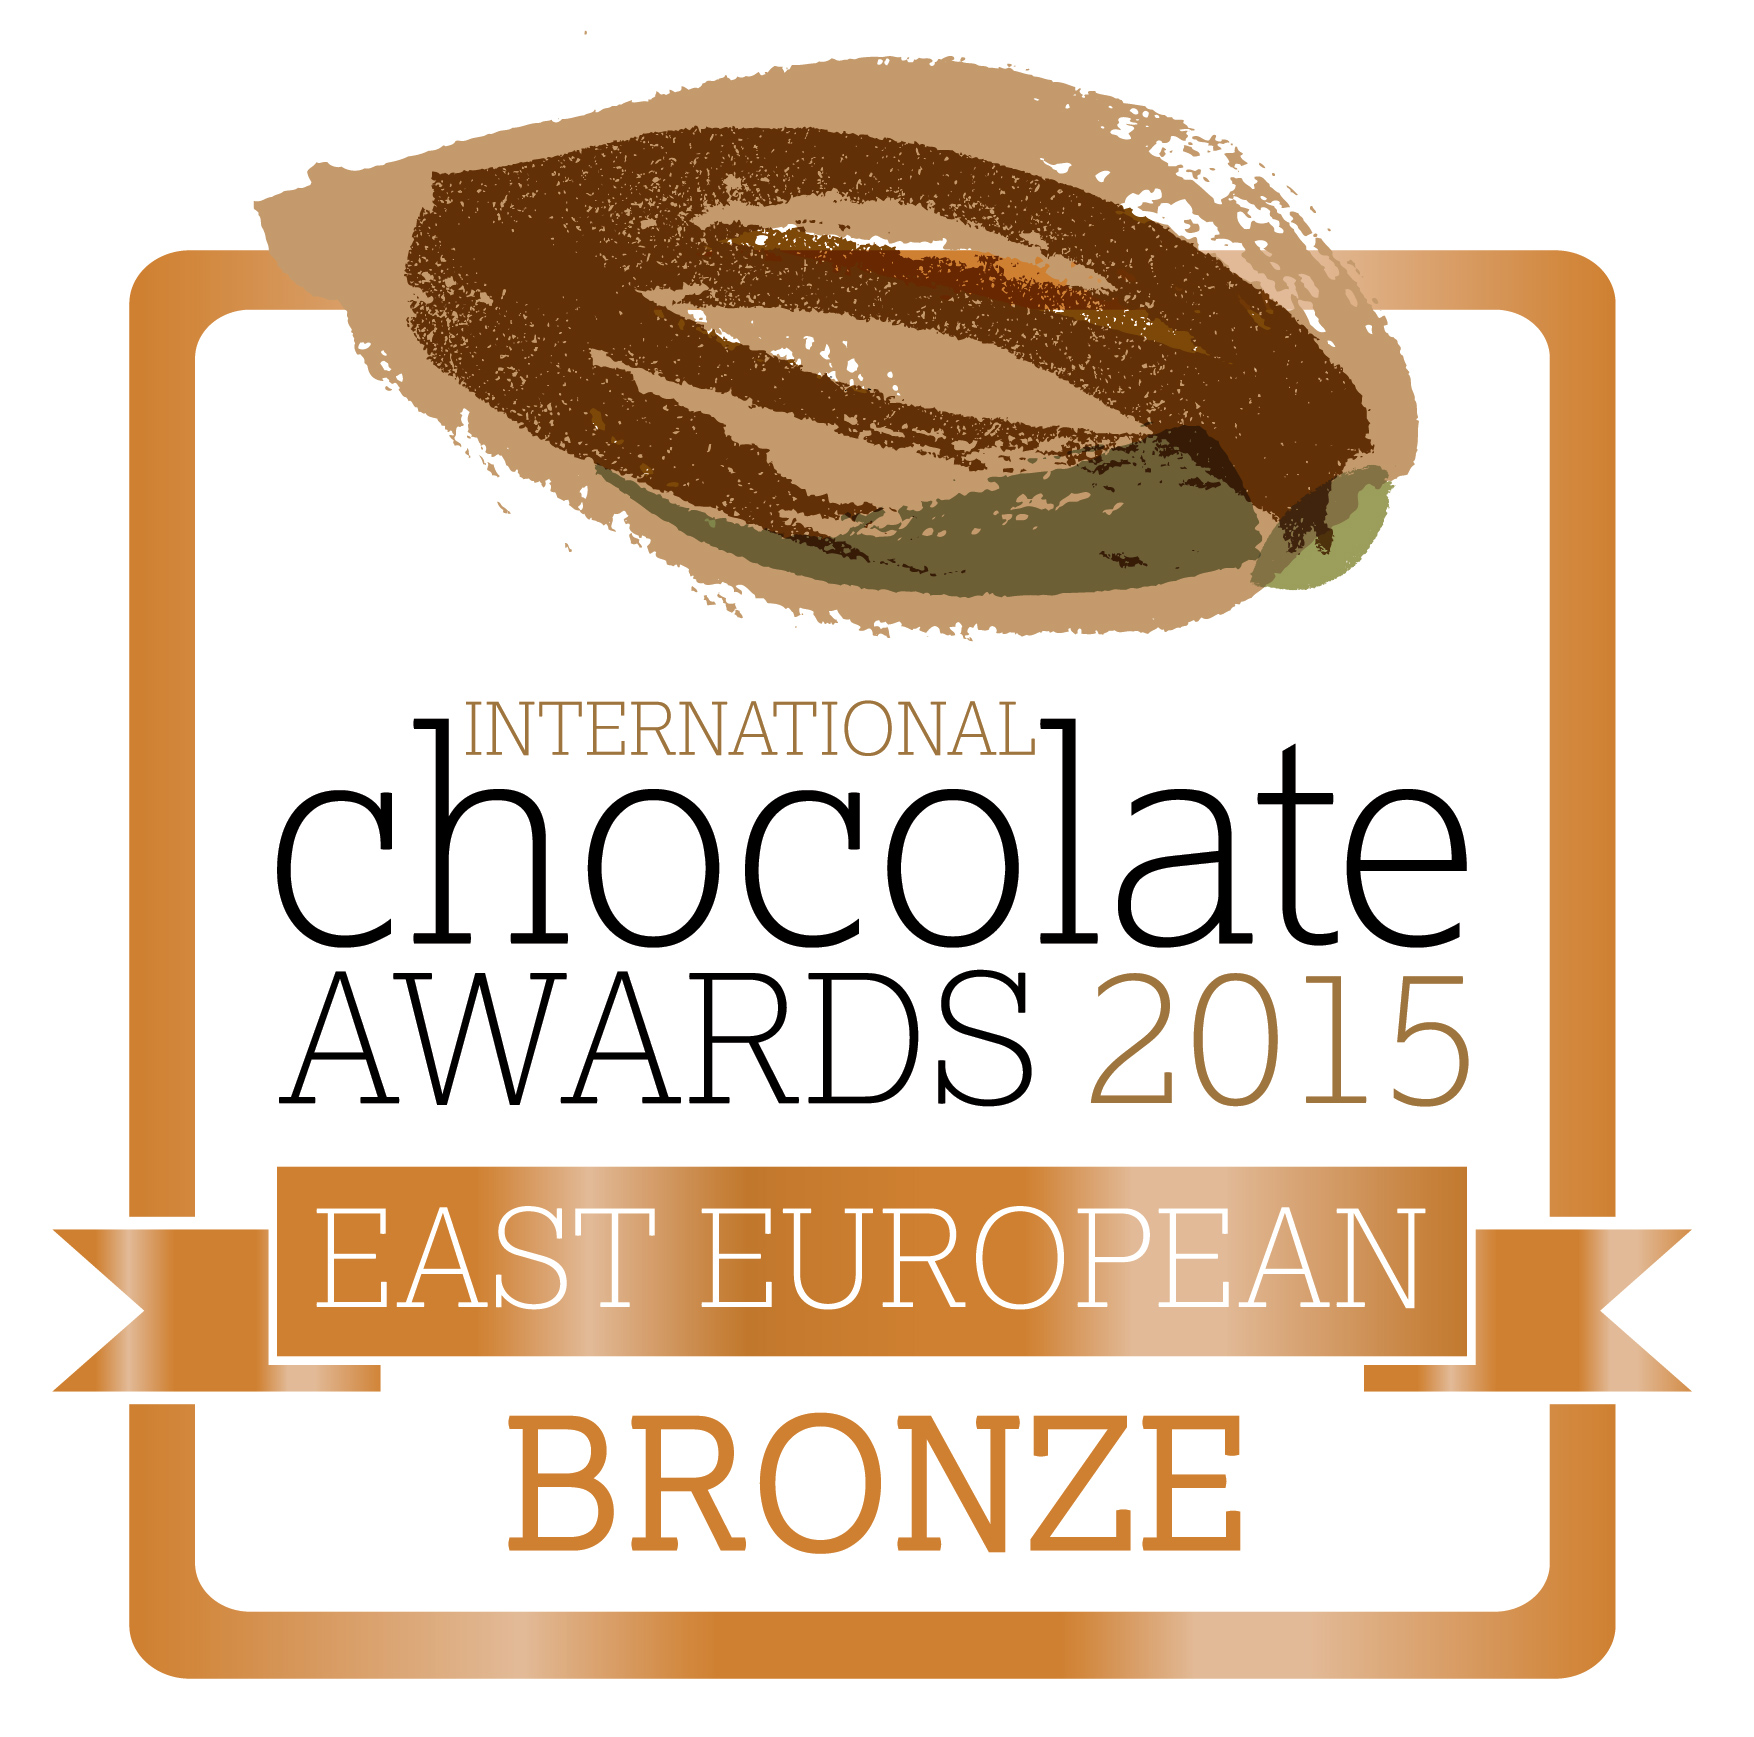 International Chocolate Awards 2015 - Bronze - East European RGB - web